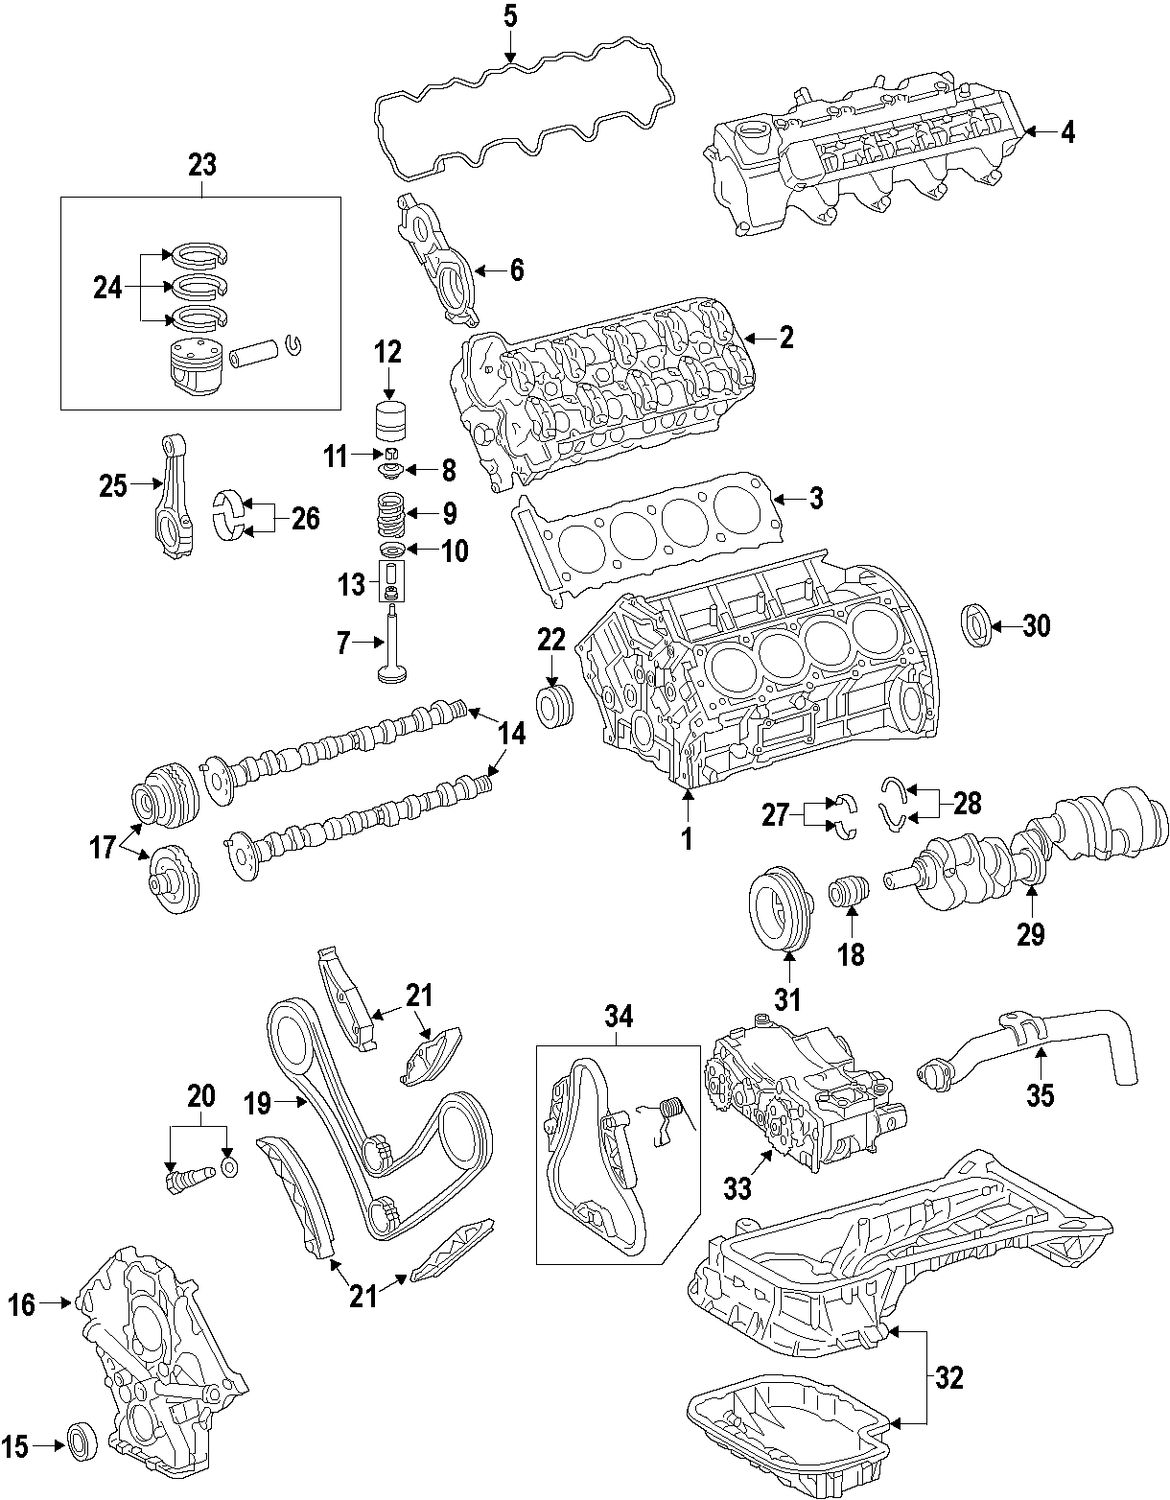 2002 ford windstar engine diagram e30 325i wiring exhaust parts